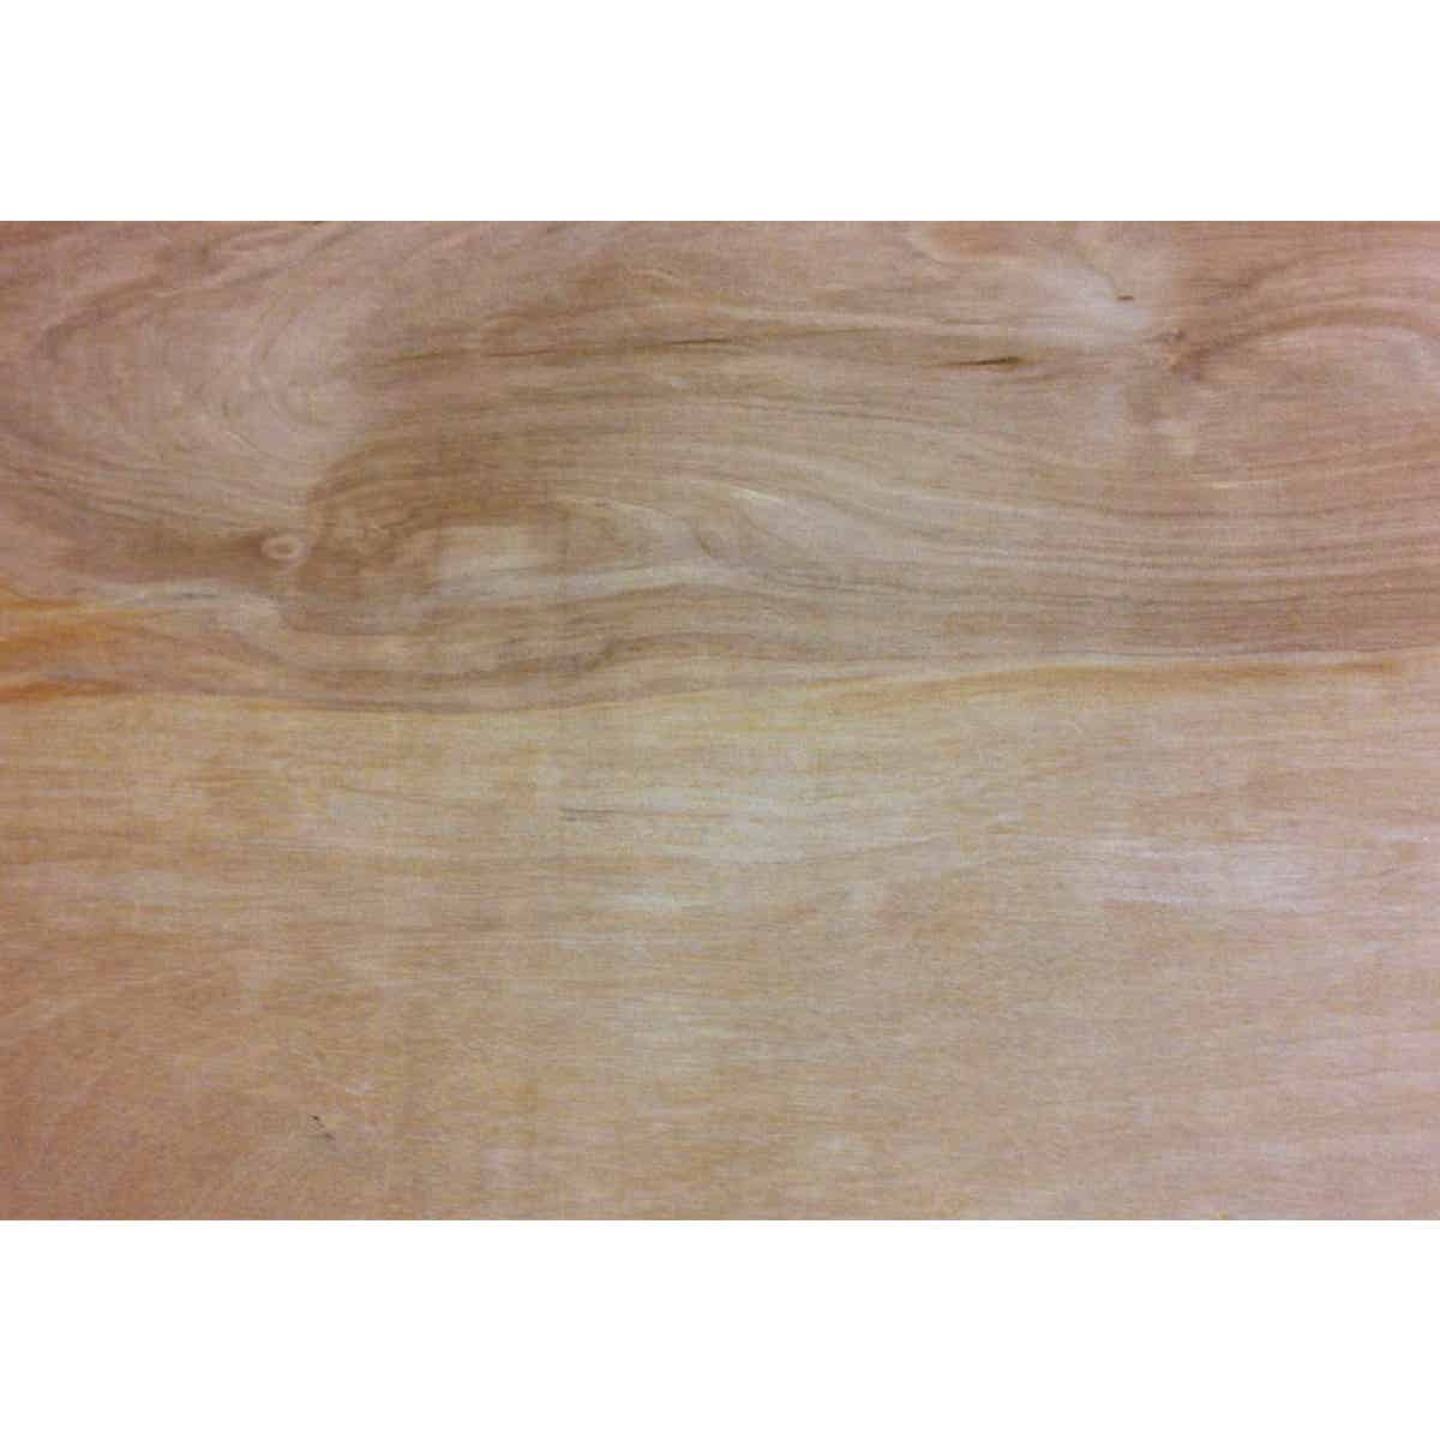 Universal Forest Products 1/2 In. x 24 In. x 24 In. Birch Plywood Panel Image 1